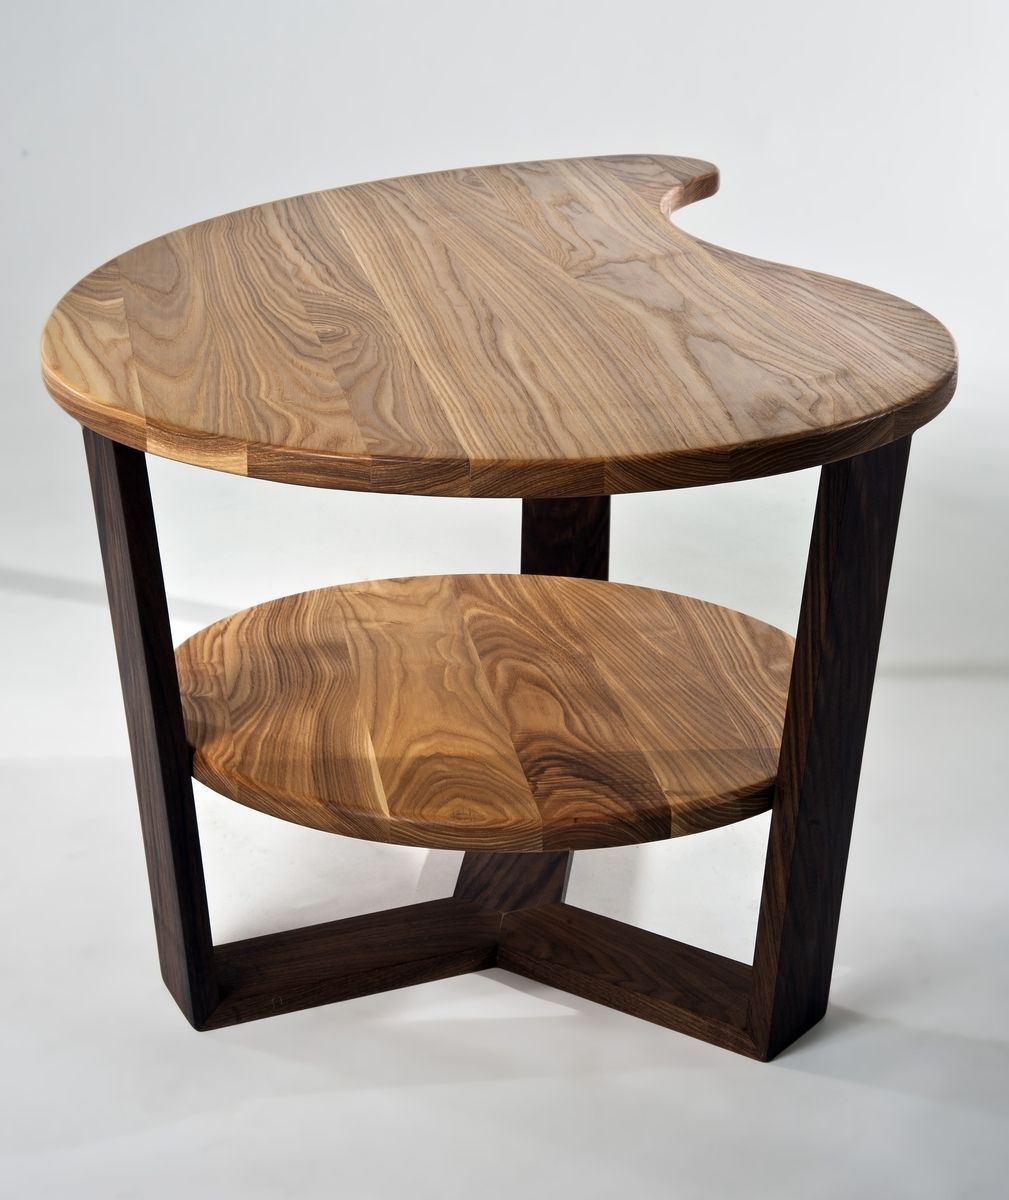 hand crafted ying yang yong tables - modern modular tables